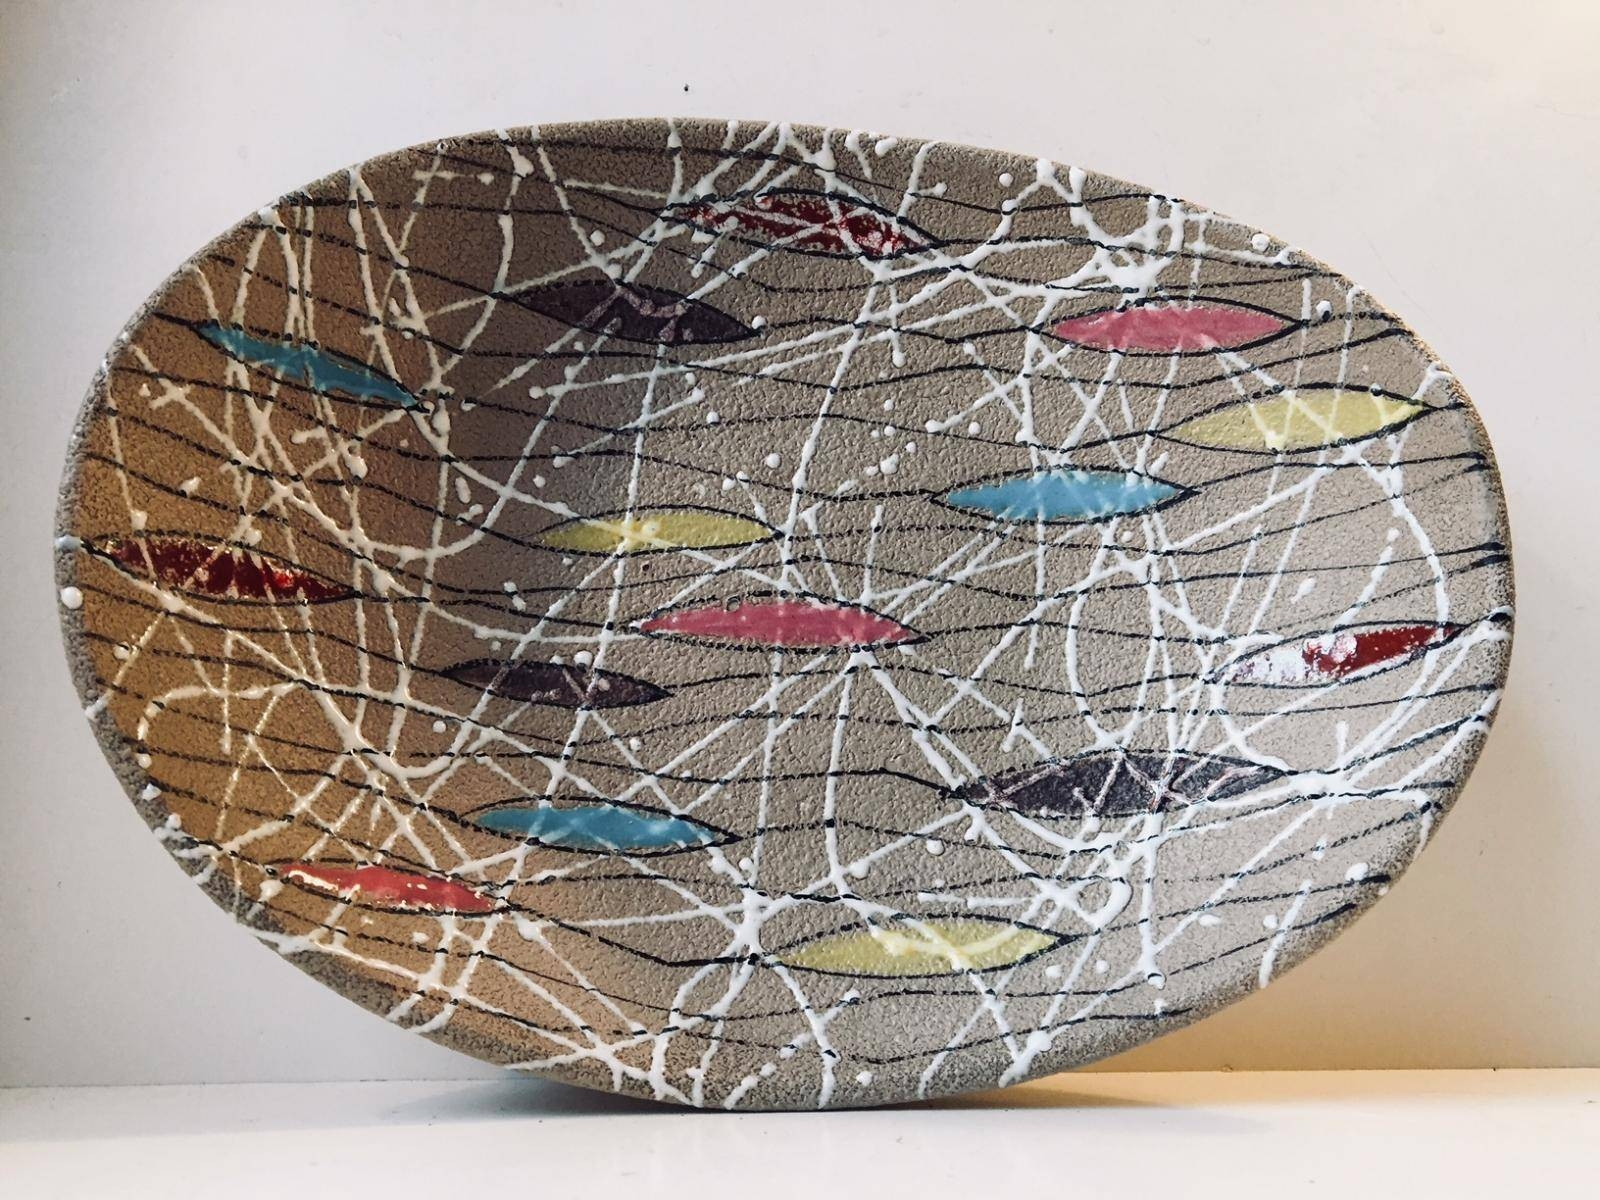 Multicolored Italian Modernist Ceramic Bowlfratelli Intended For Current Italian Ceramic Wall Art (View 12 of 30)